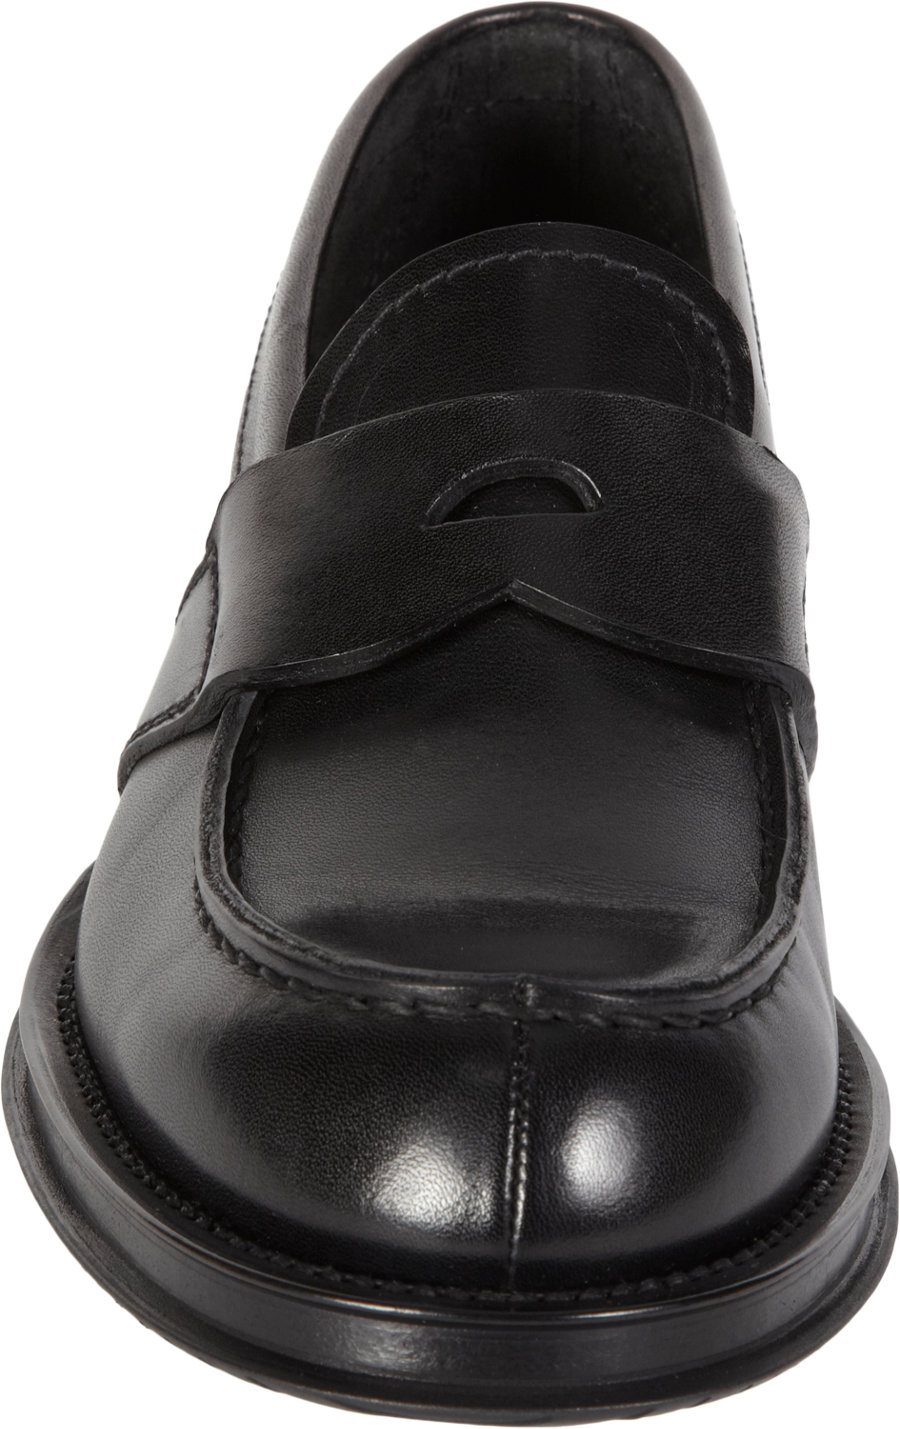 251f5475dd2 Gallery. Previously sold at  Barneys Warehouse · Men s Penny Loafers ...